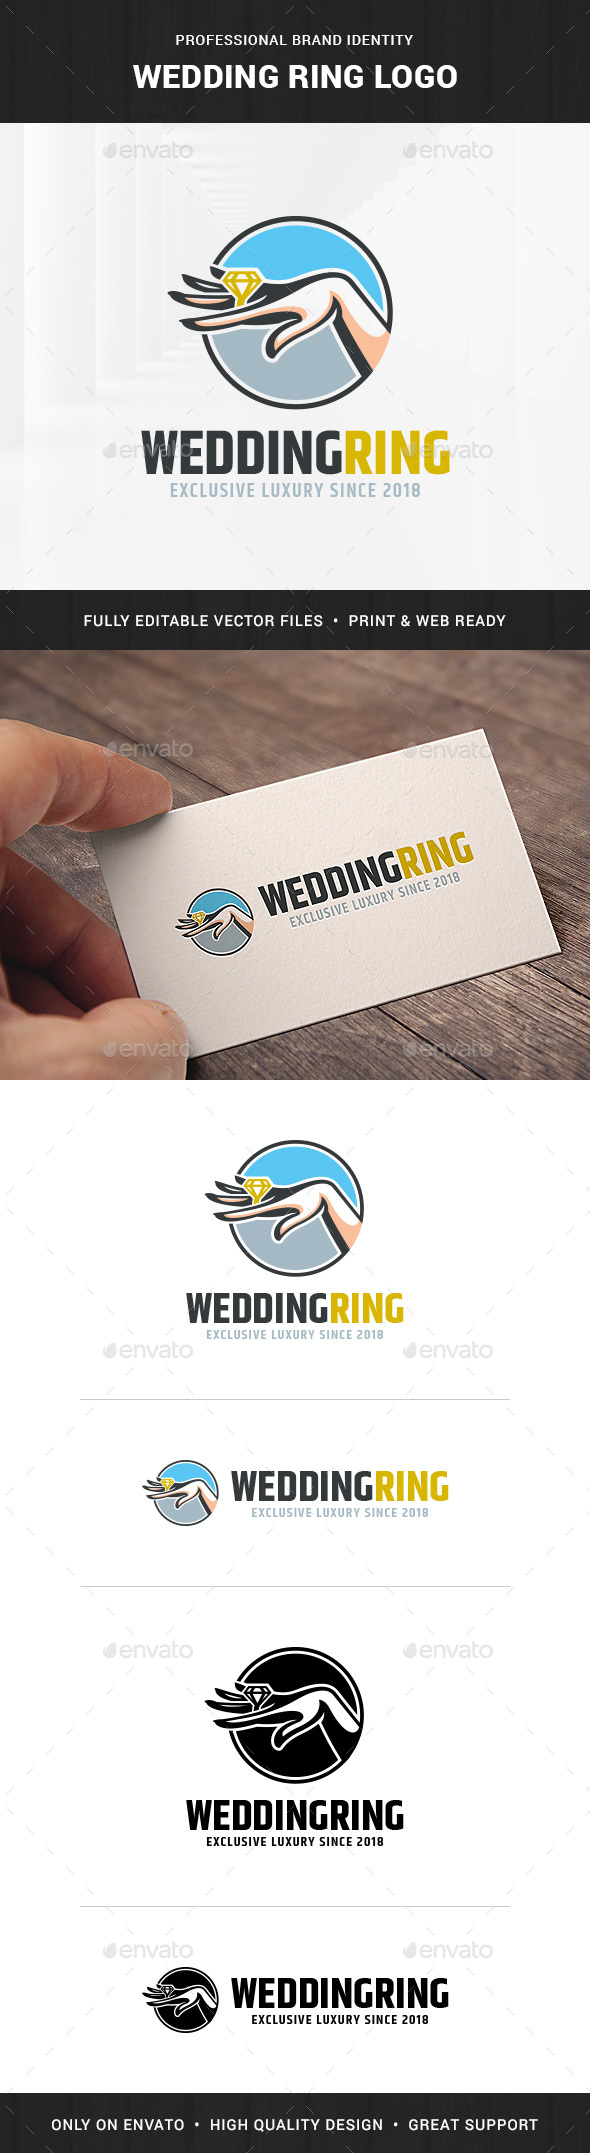 Wedding Ring Logo Template - Objects Logo Templates